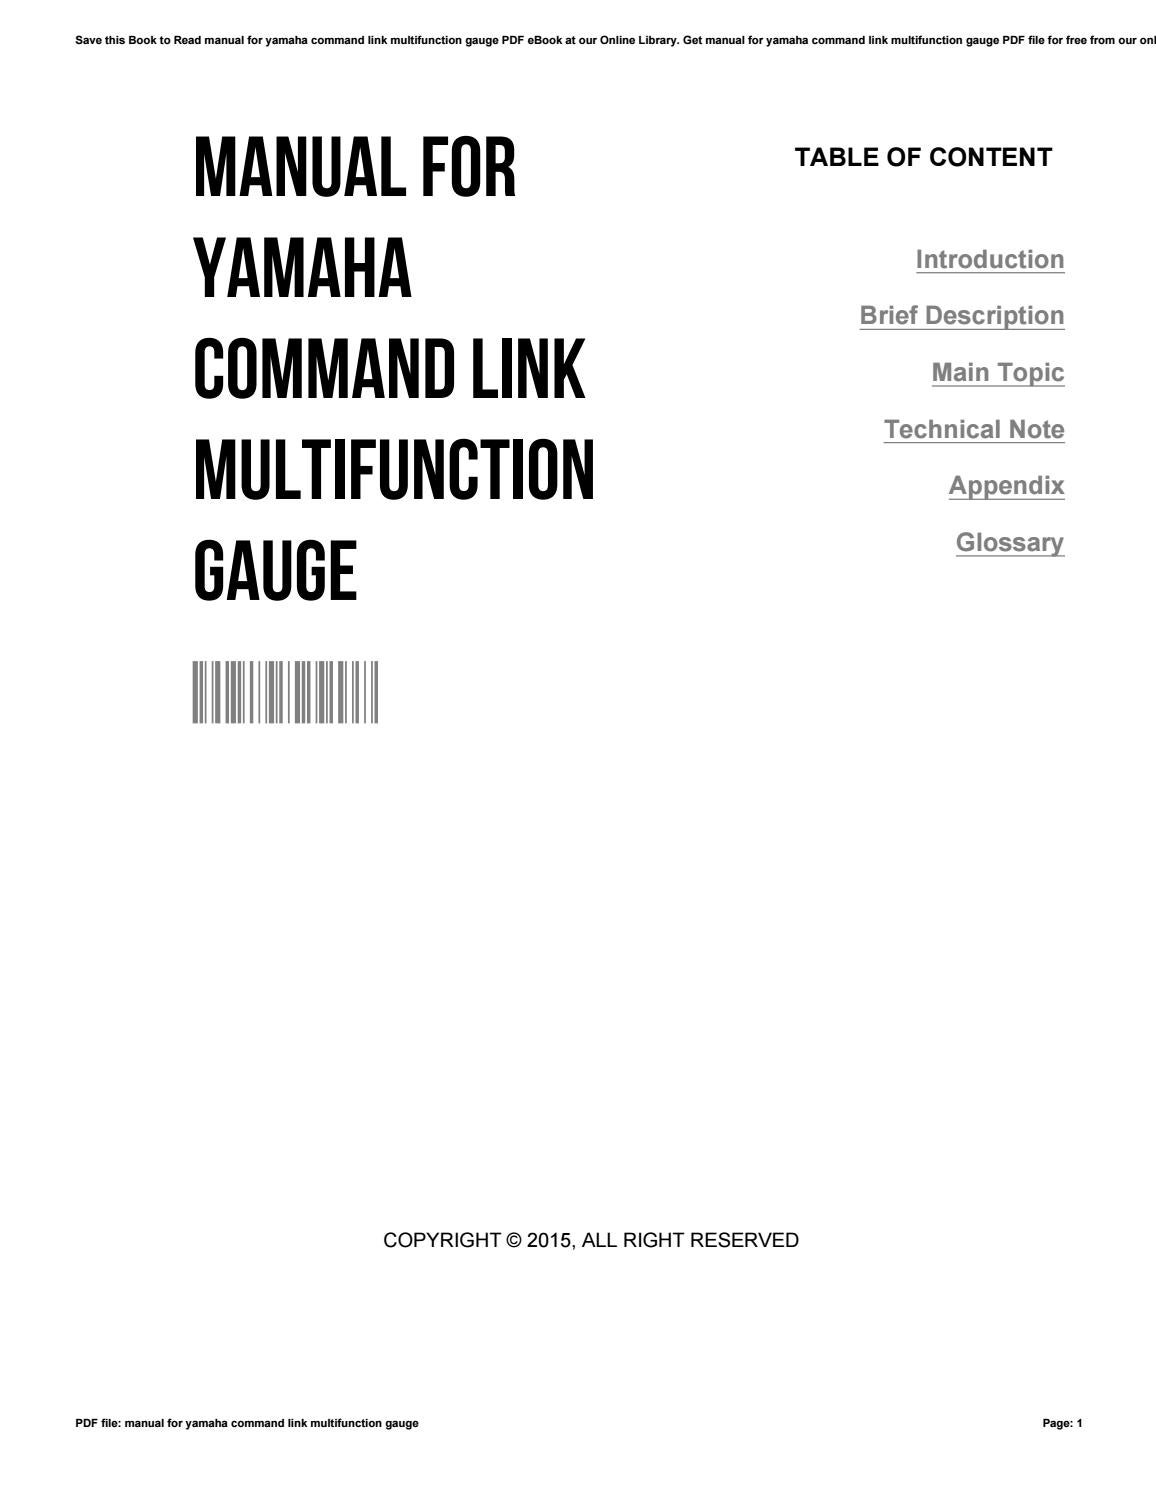 Manual for yamaha command link multifunction gauge by